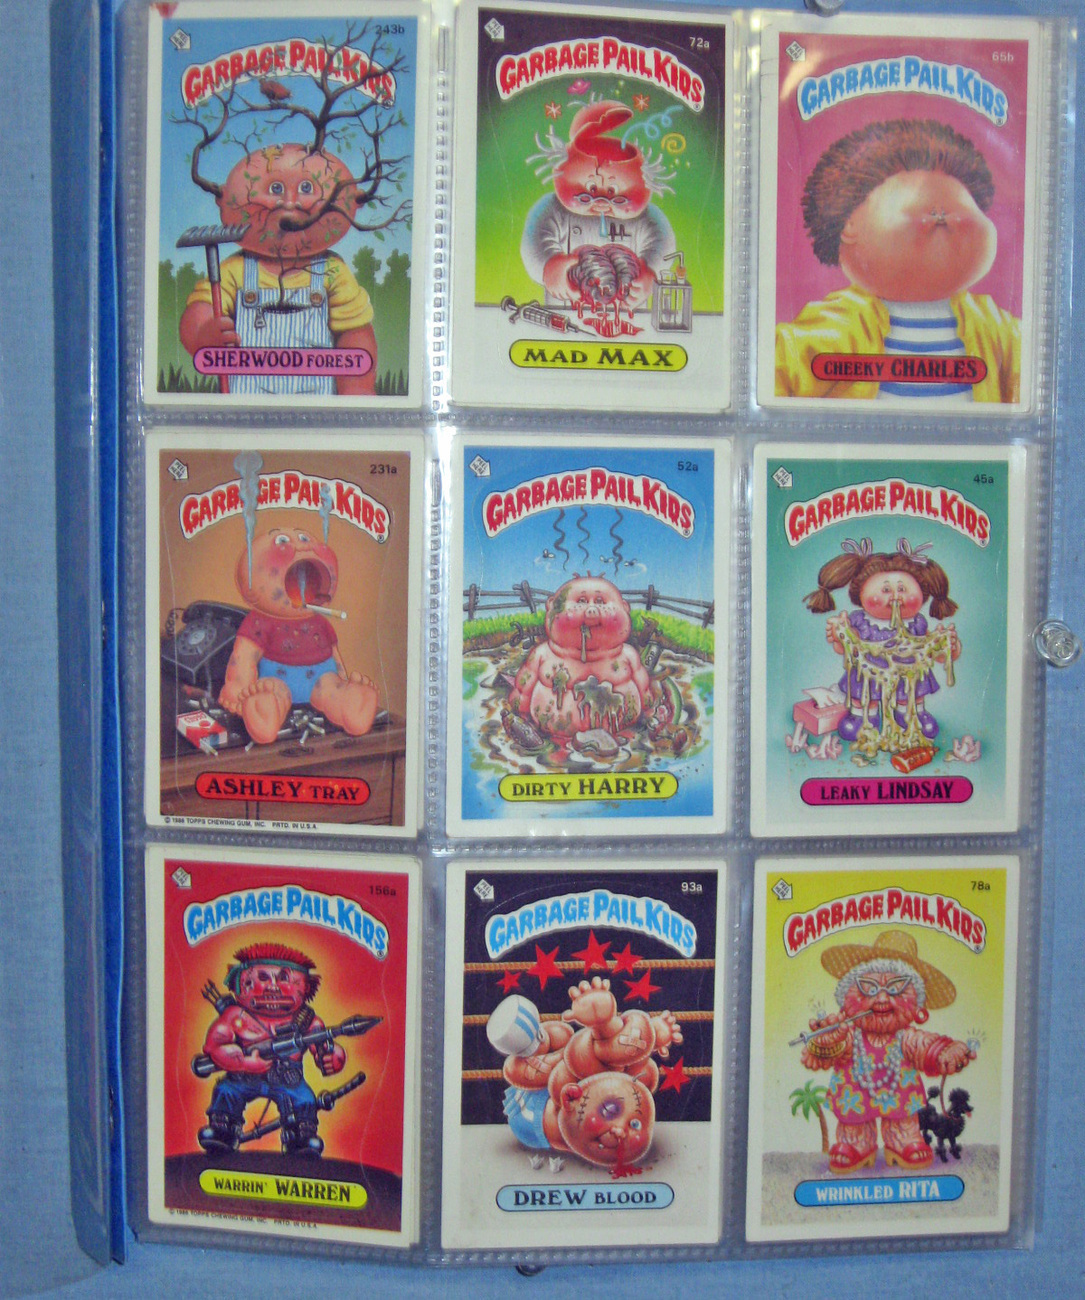 Garbage Pail Kids Collector Cards - GPK -  32 cards